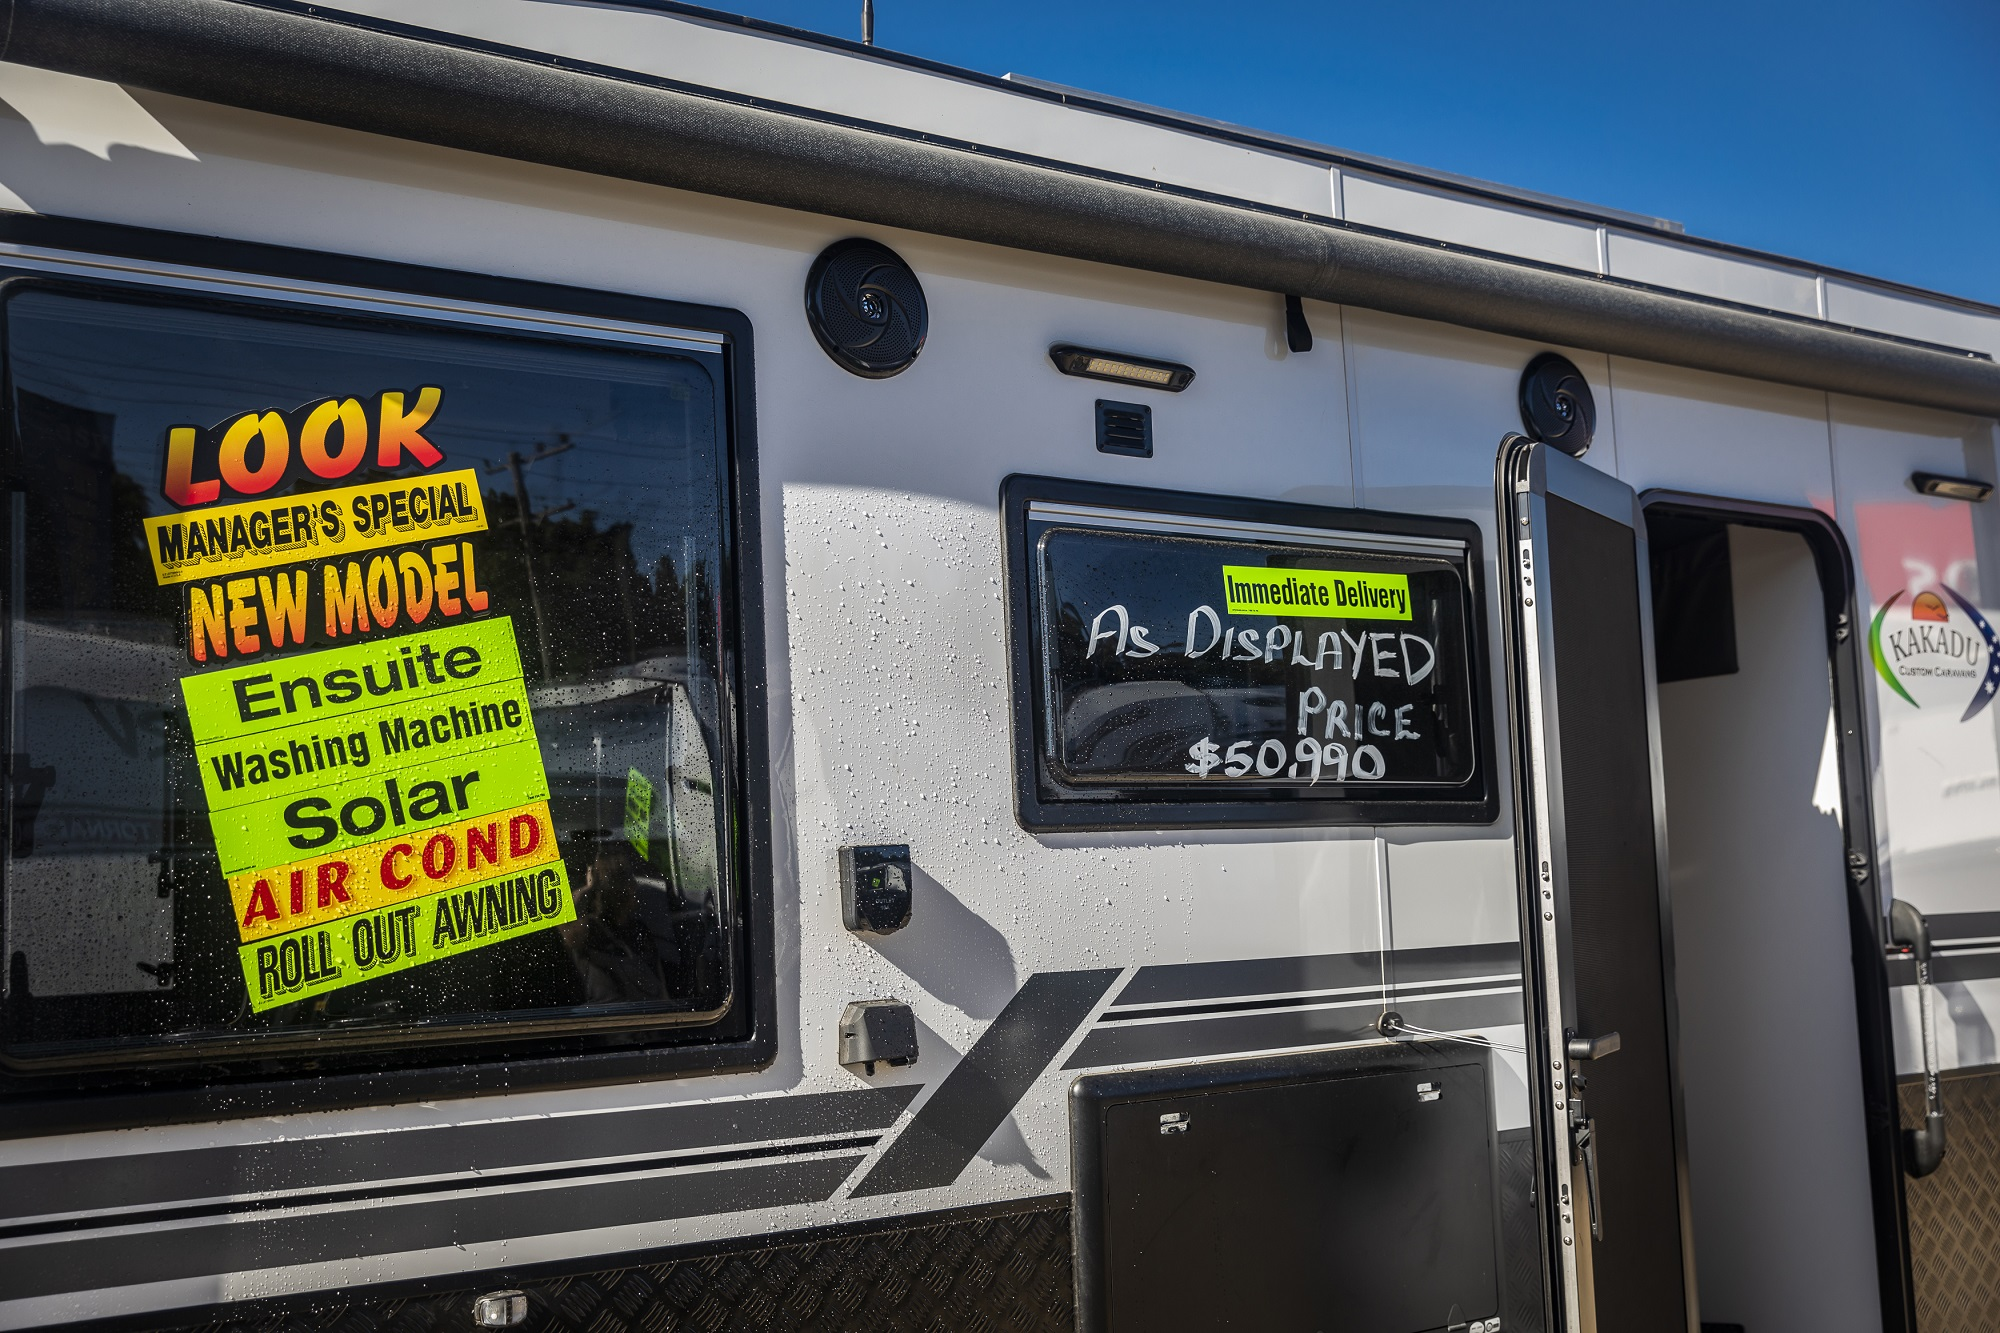 Quick guide to caravan and RV finance